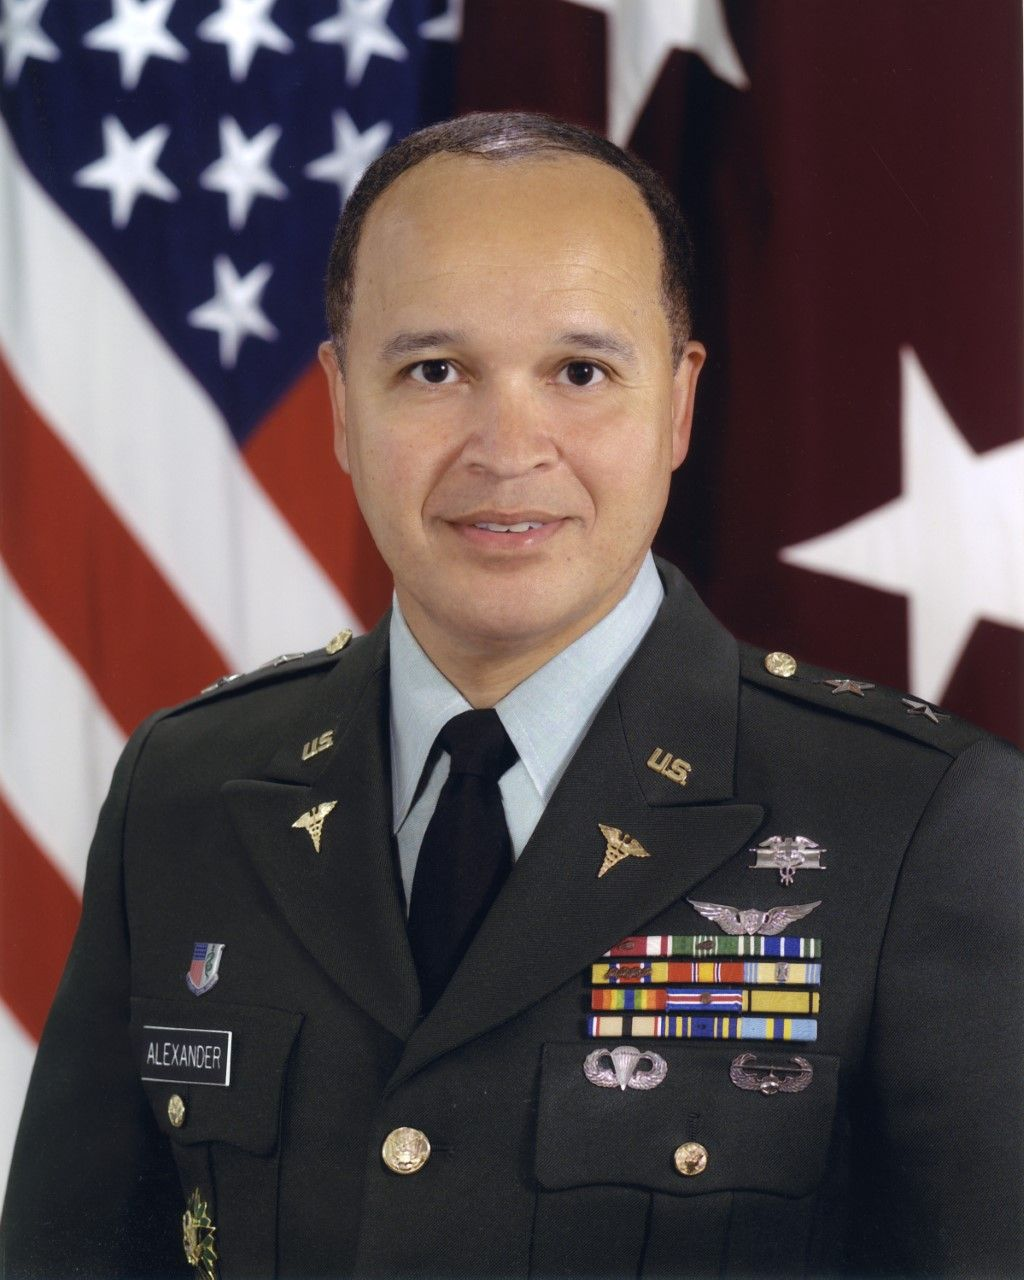 Maj. Gen. (Ret) George A. Alexander, M.D. ('77) has been appointed by the Secretary of Defense (SecDef) to serve on the Defense Advisory Committee on Women in the Services (DACOWITS)